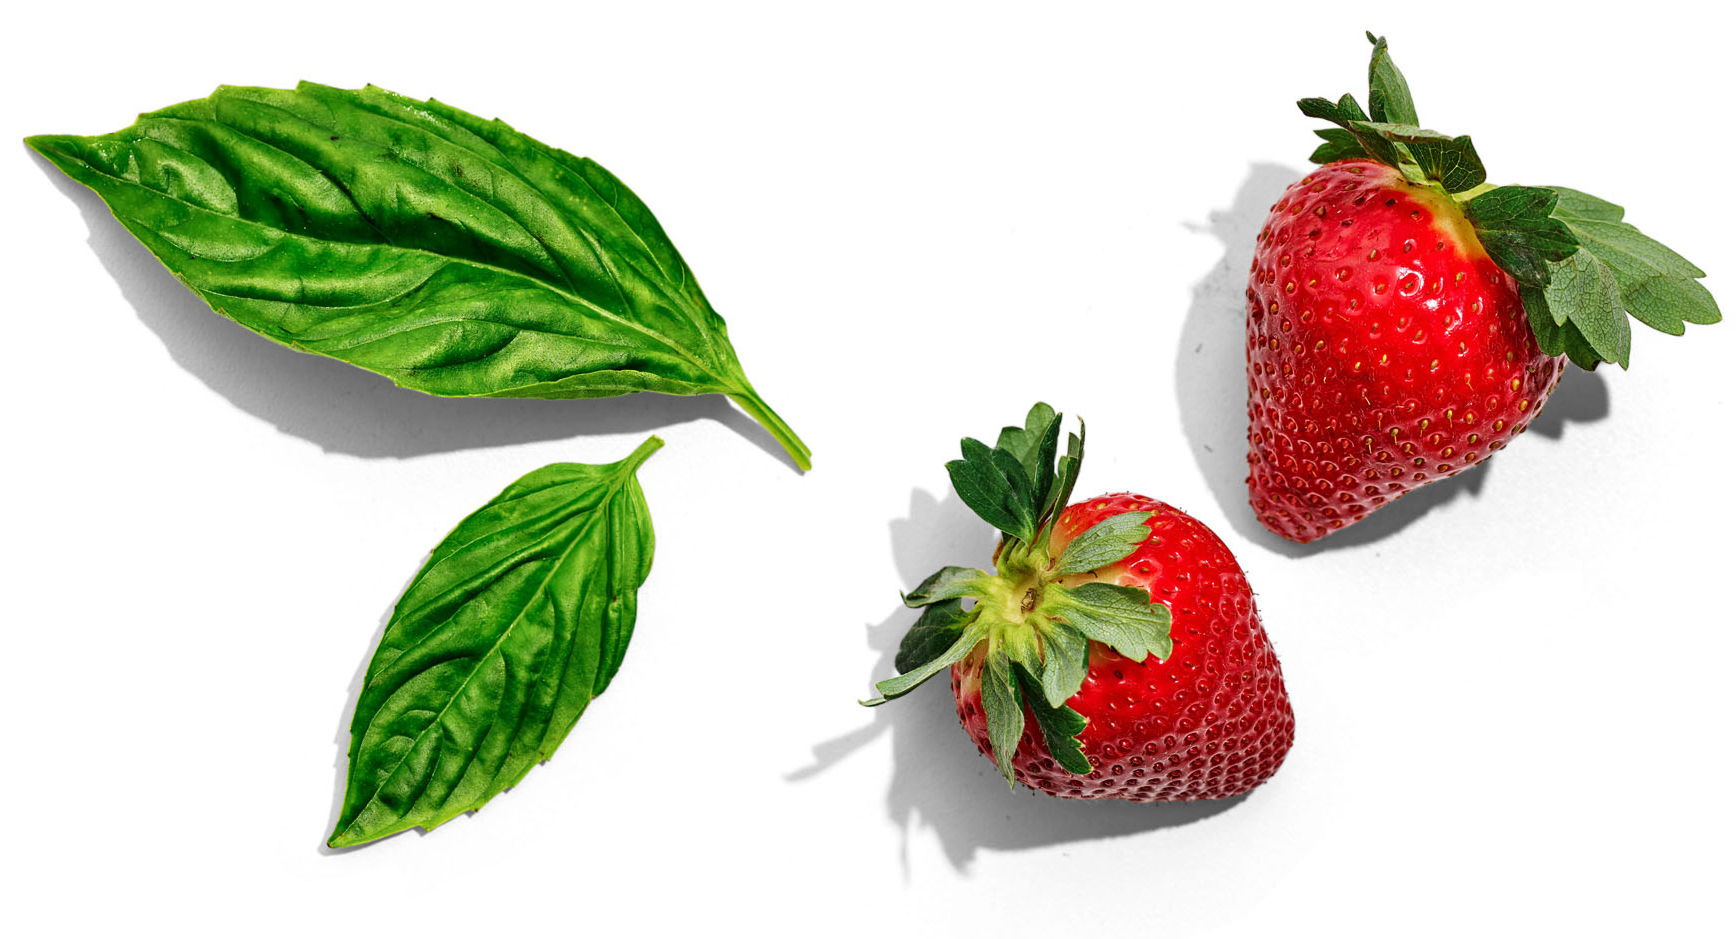 basil leaves and strawberries